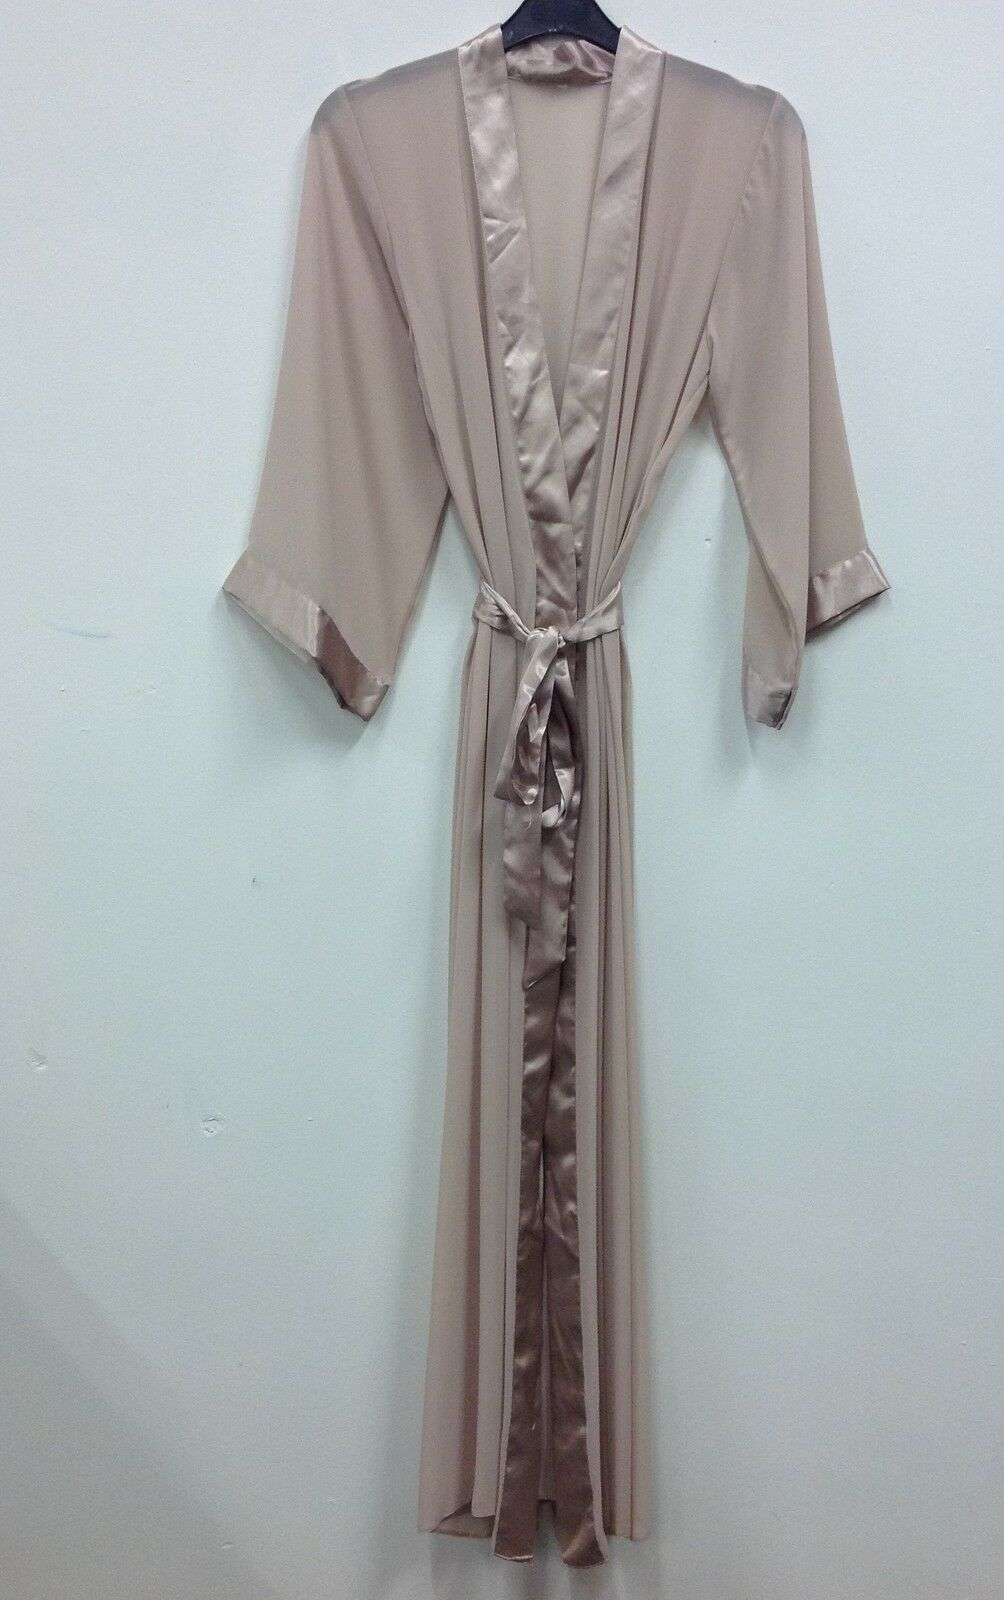 LONG SHEER CHIFFON With Satin Trimming Dressing Gown/robe Uk Sizes 8 ...